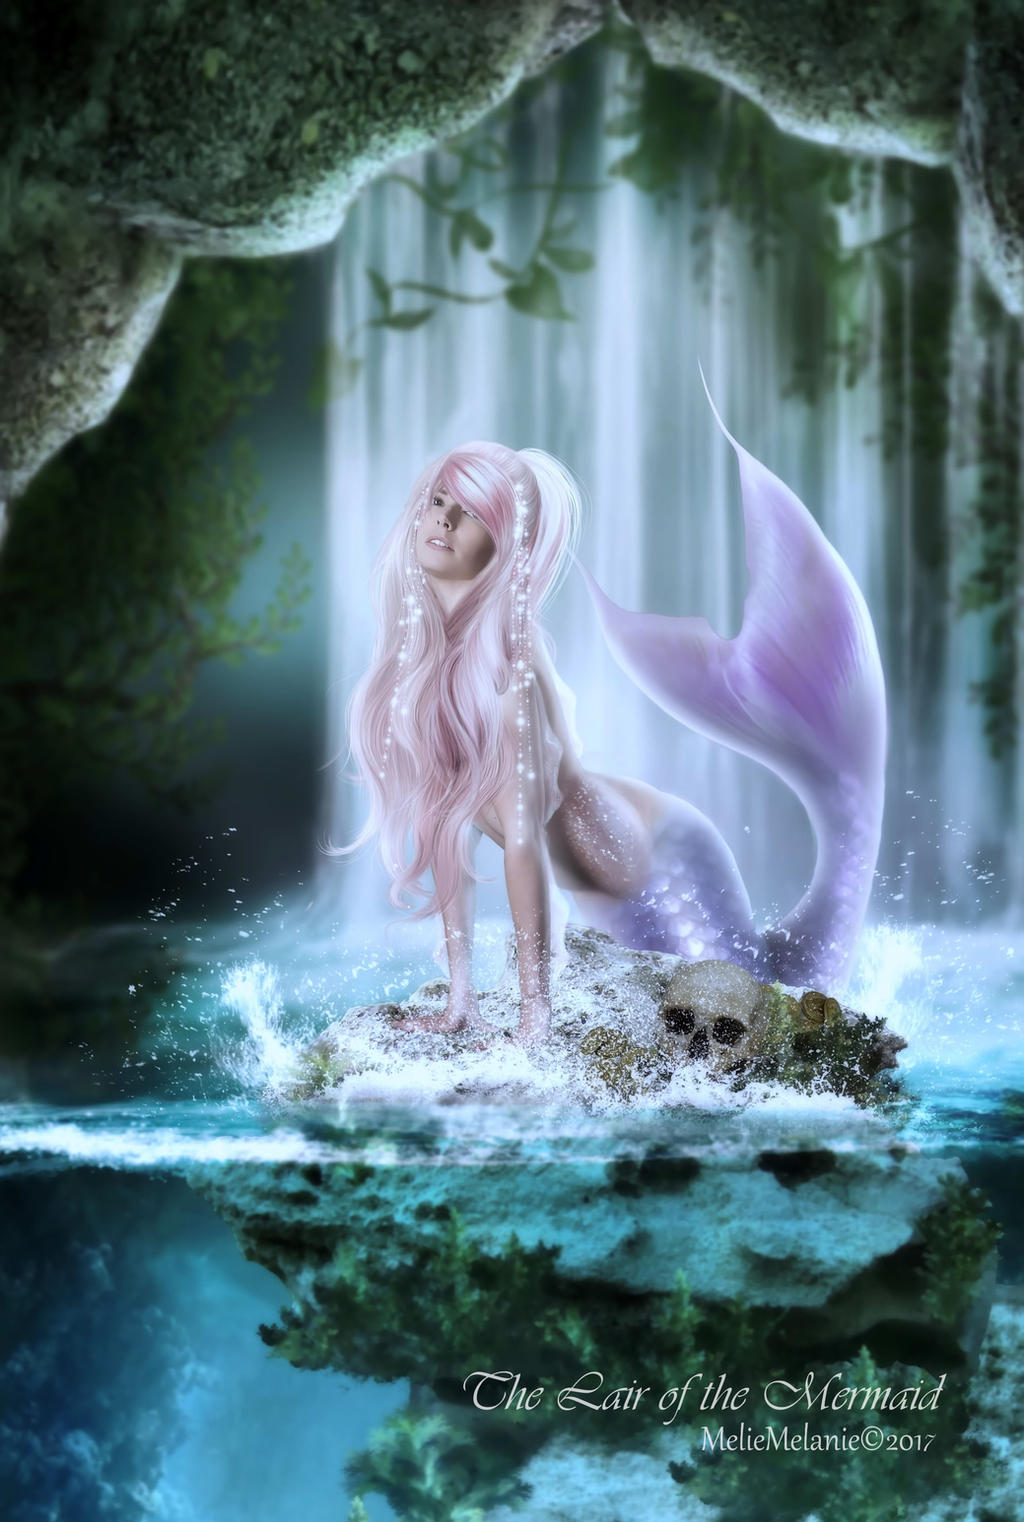 The Lair of the Mermaid by MelFeanen